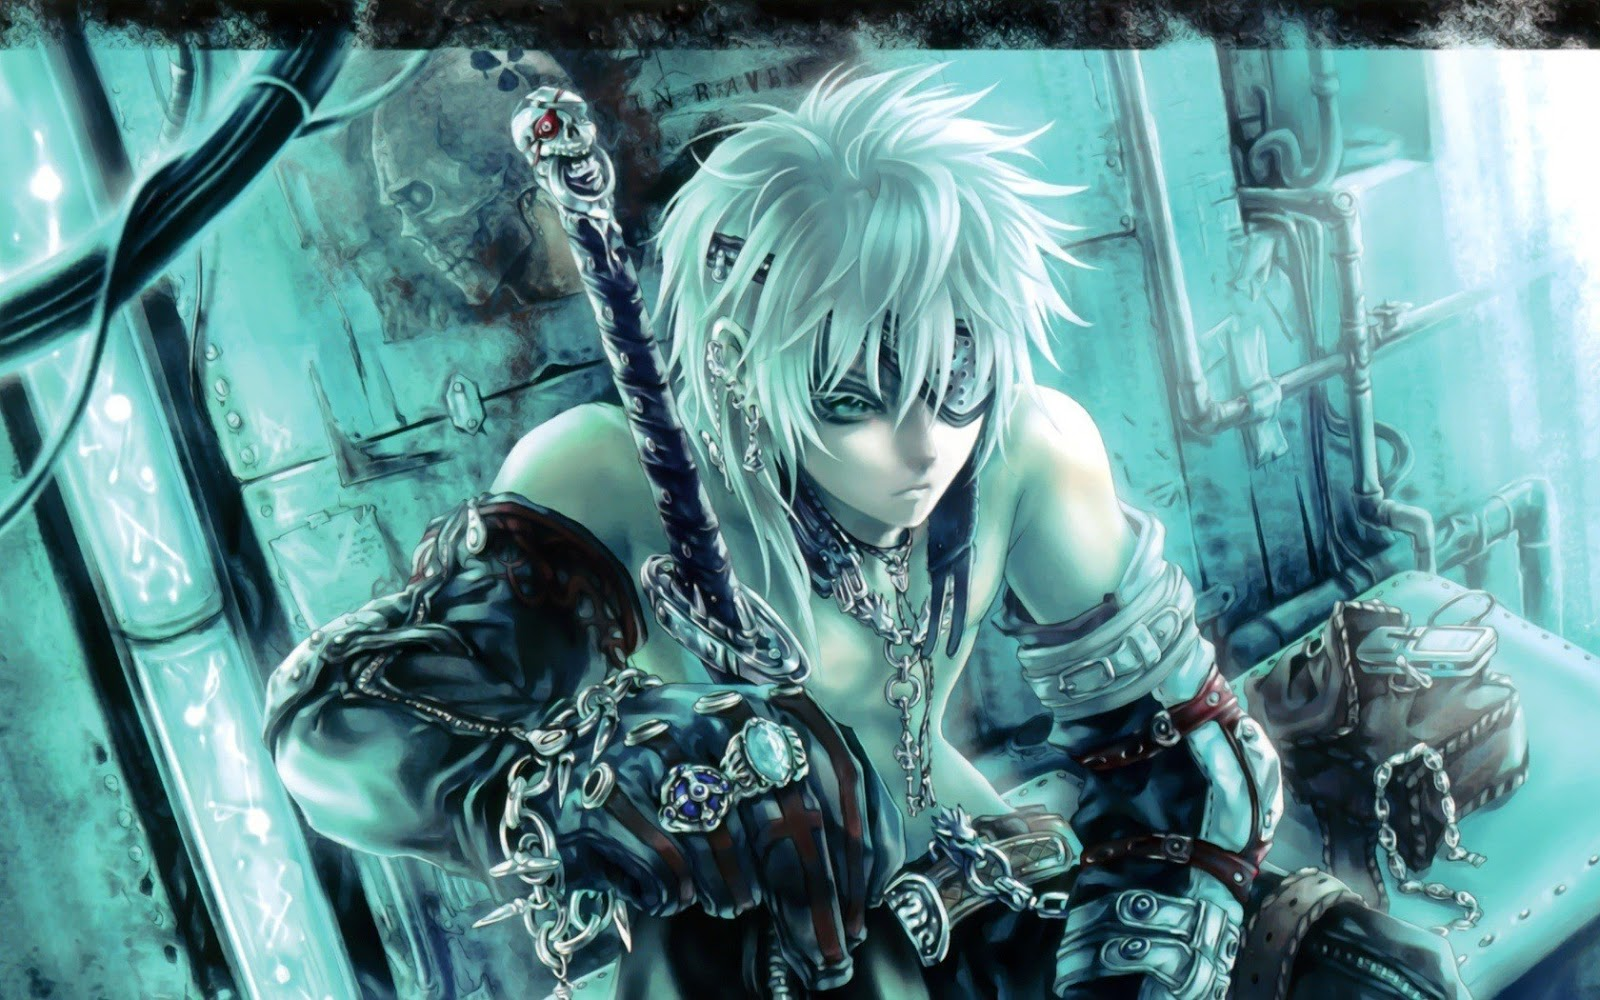 Anime boy wallpaper hd wallpapersafari - Anime hd wallpapers for pc ...